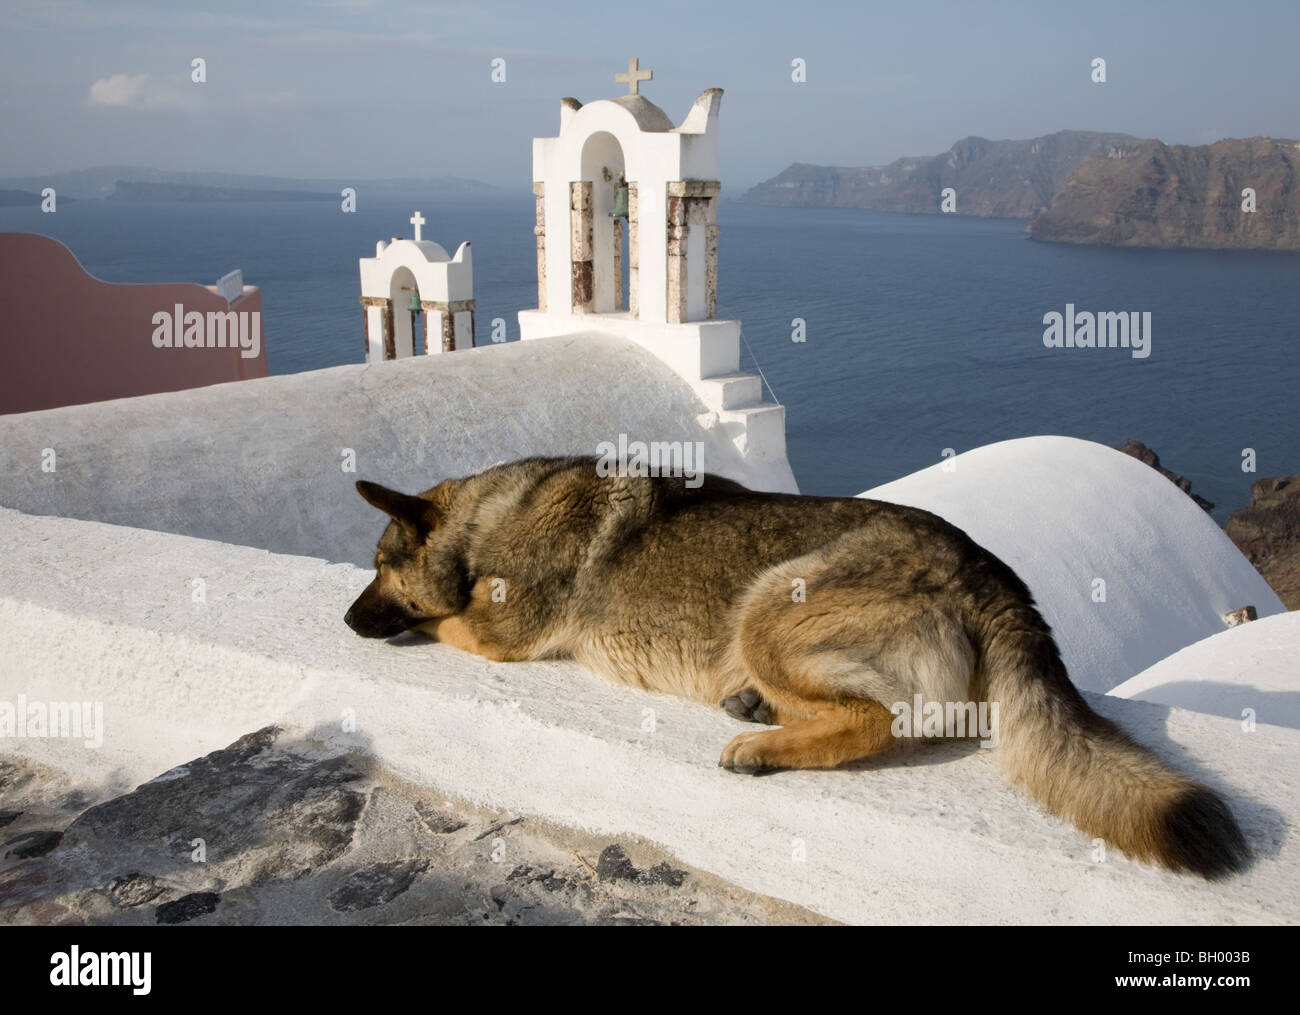 Sleeping dog on rooftop overlooking white church bell towers and Santorini lagoon - Stock Image